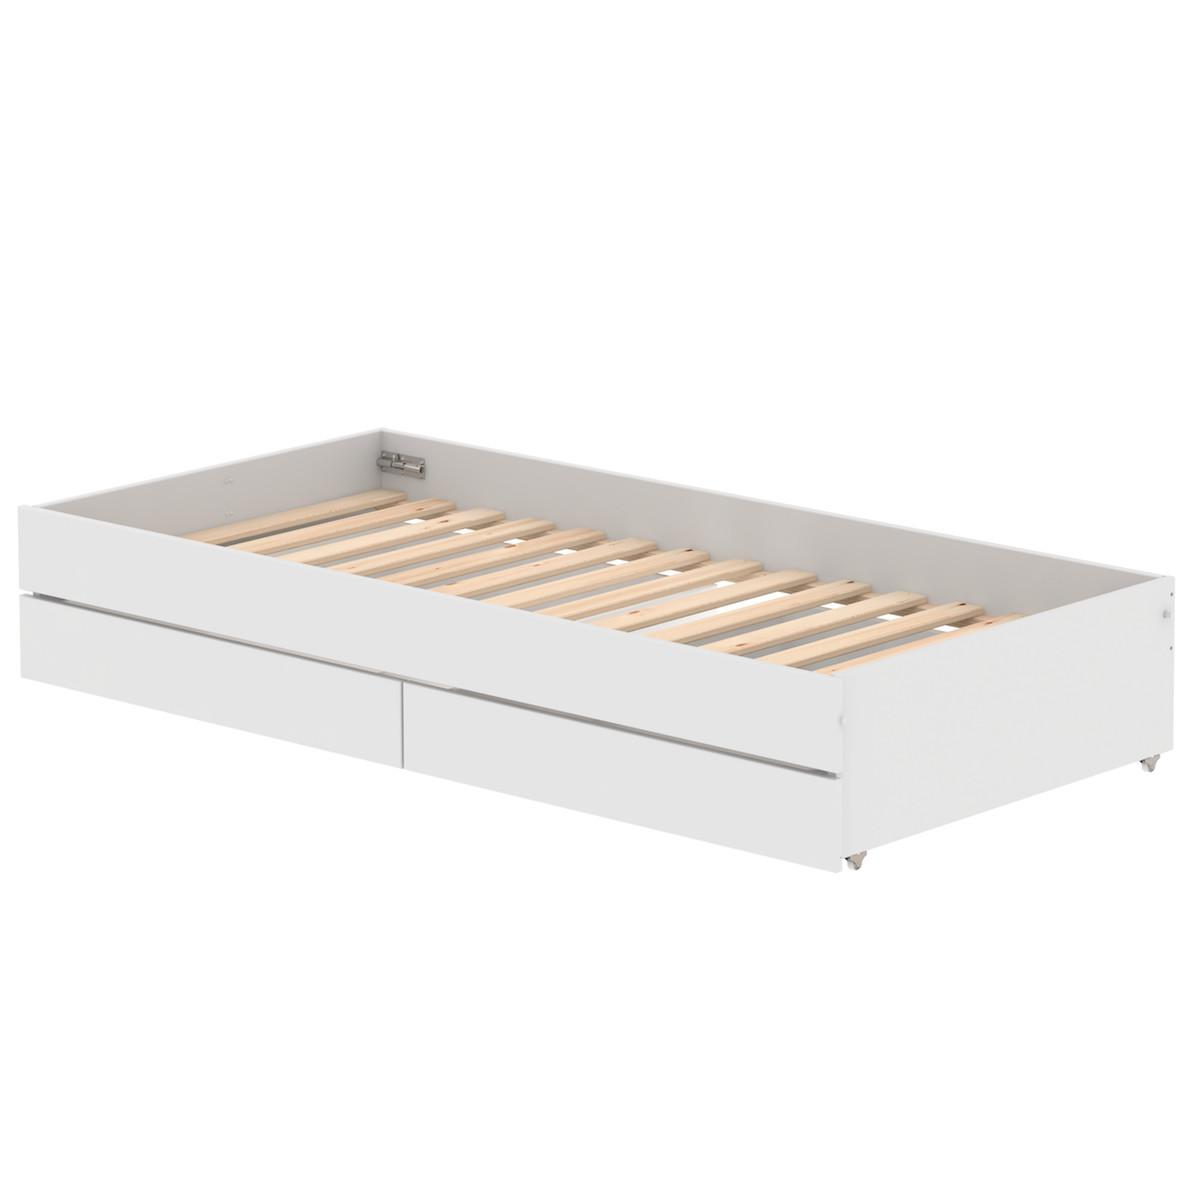 Lit gigogne 90x190cm WHITE Flexa blanc-naturel